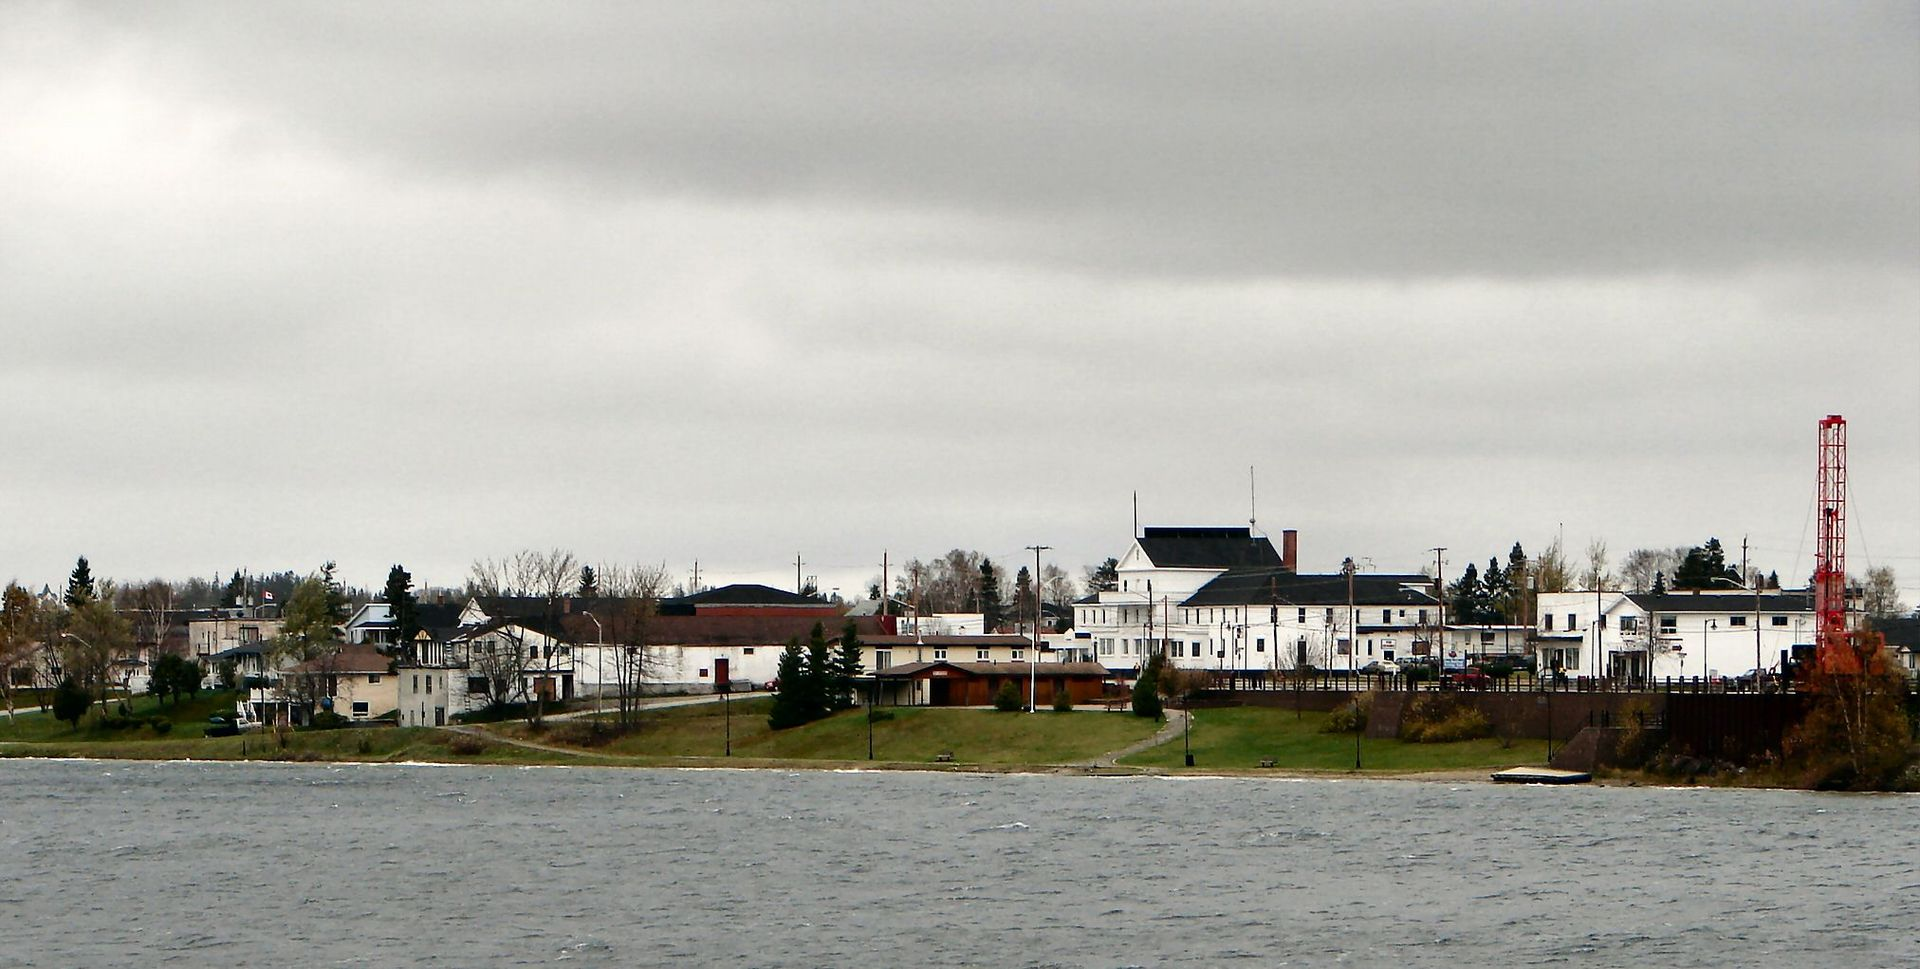 Wawa as seen across Wawa Lake